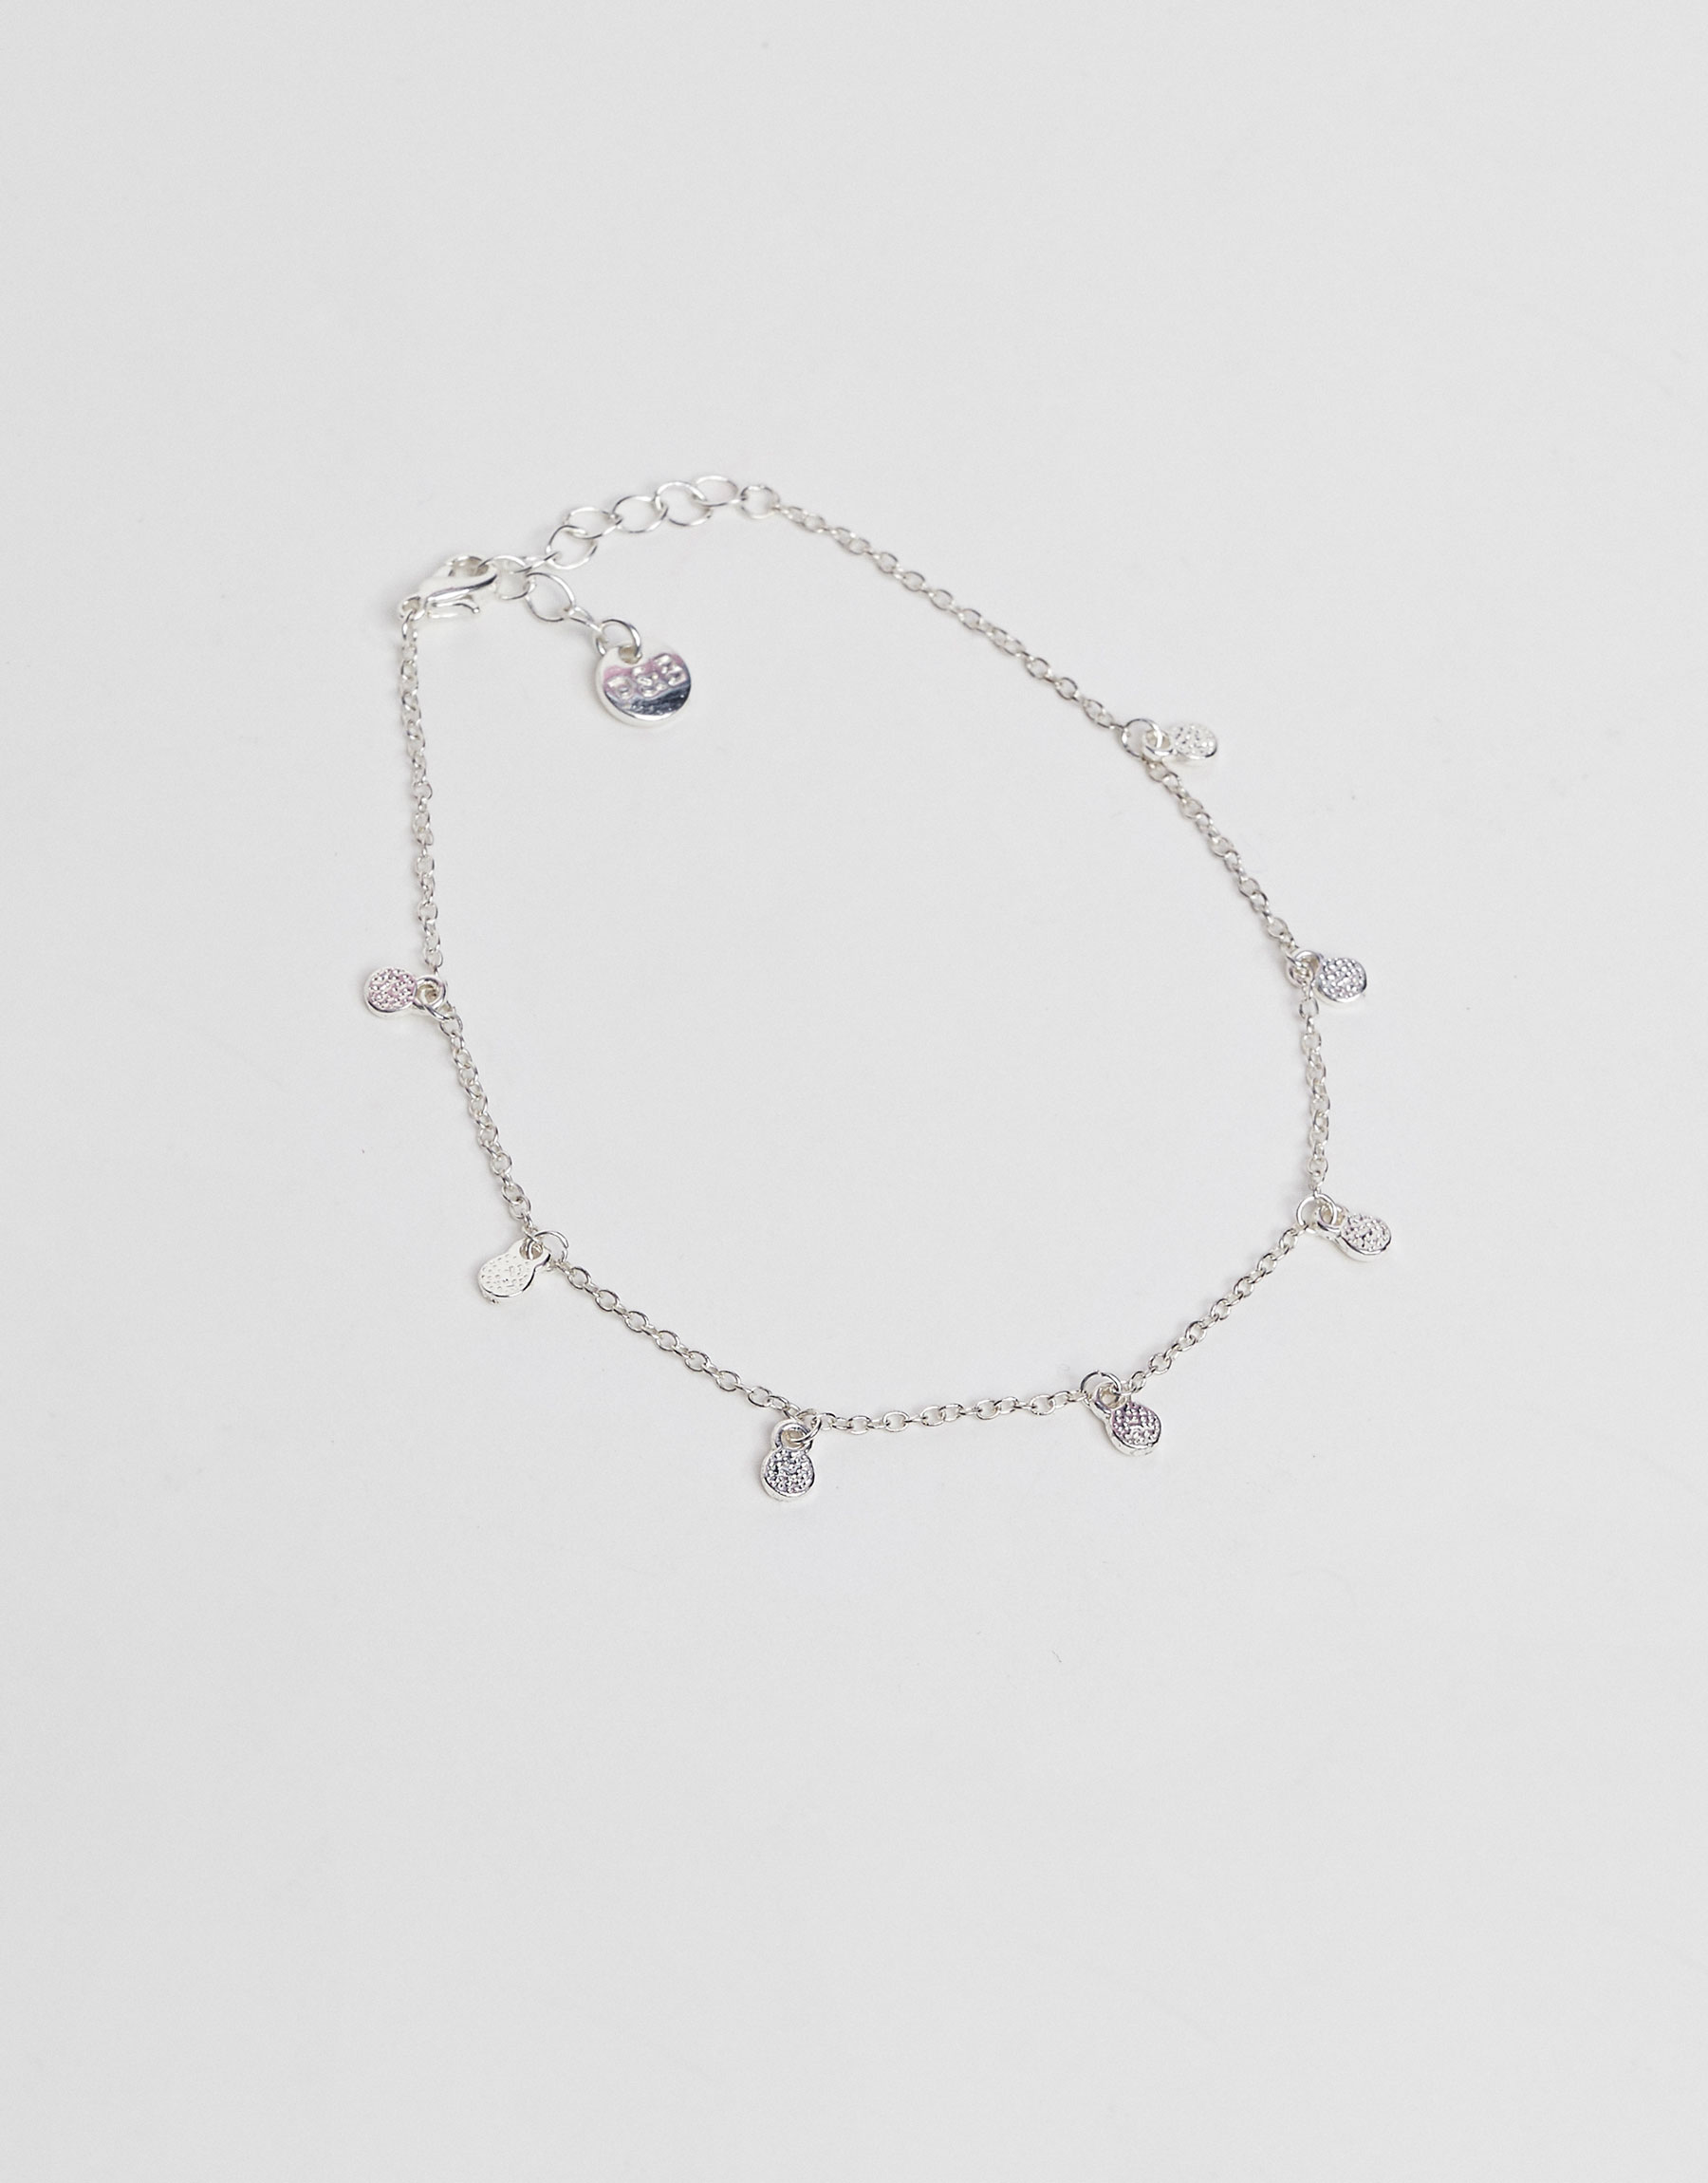 Anklet with teardrop charms